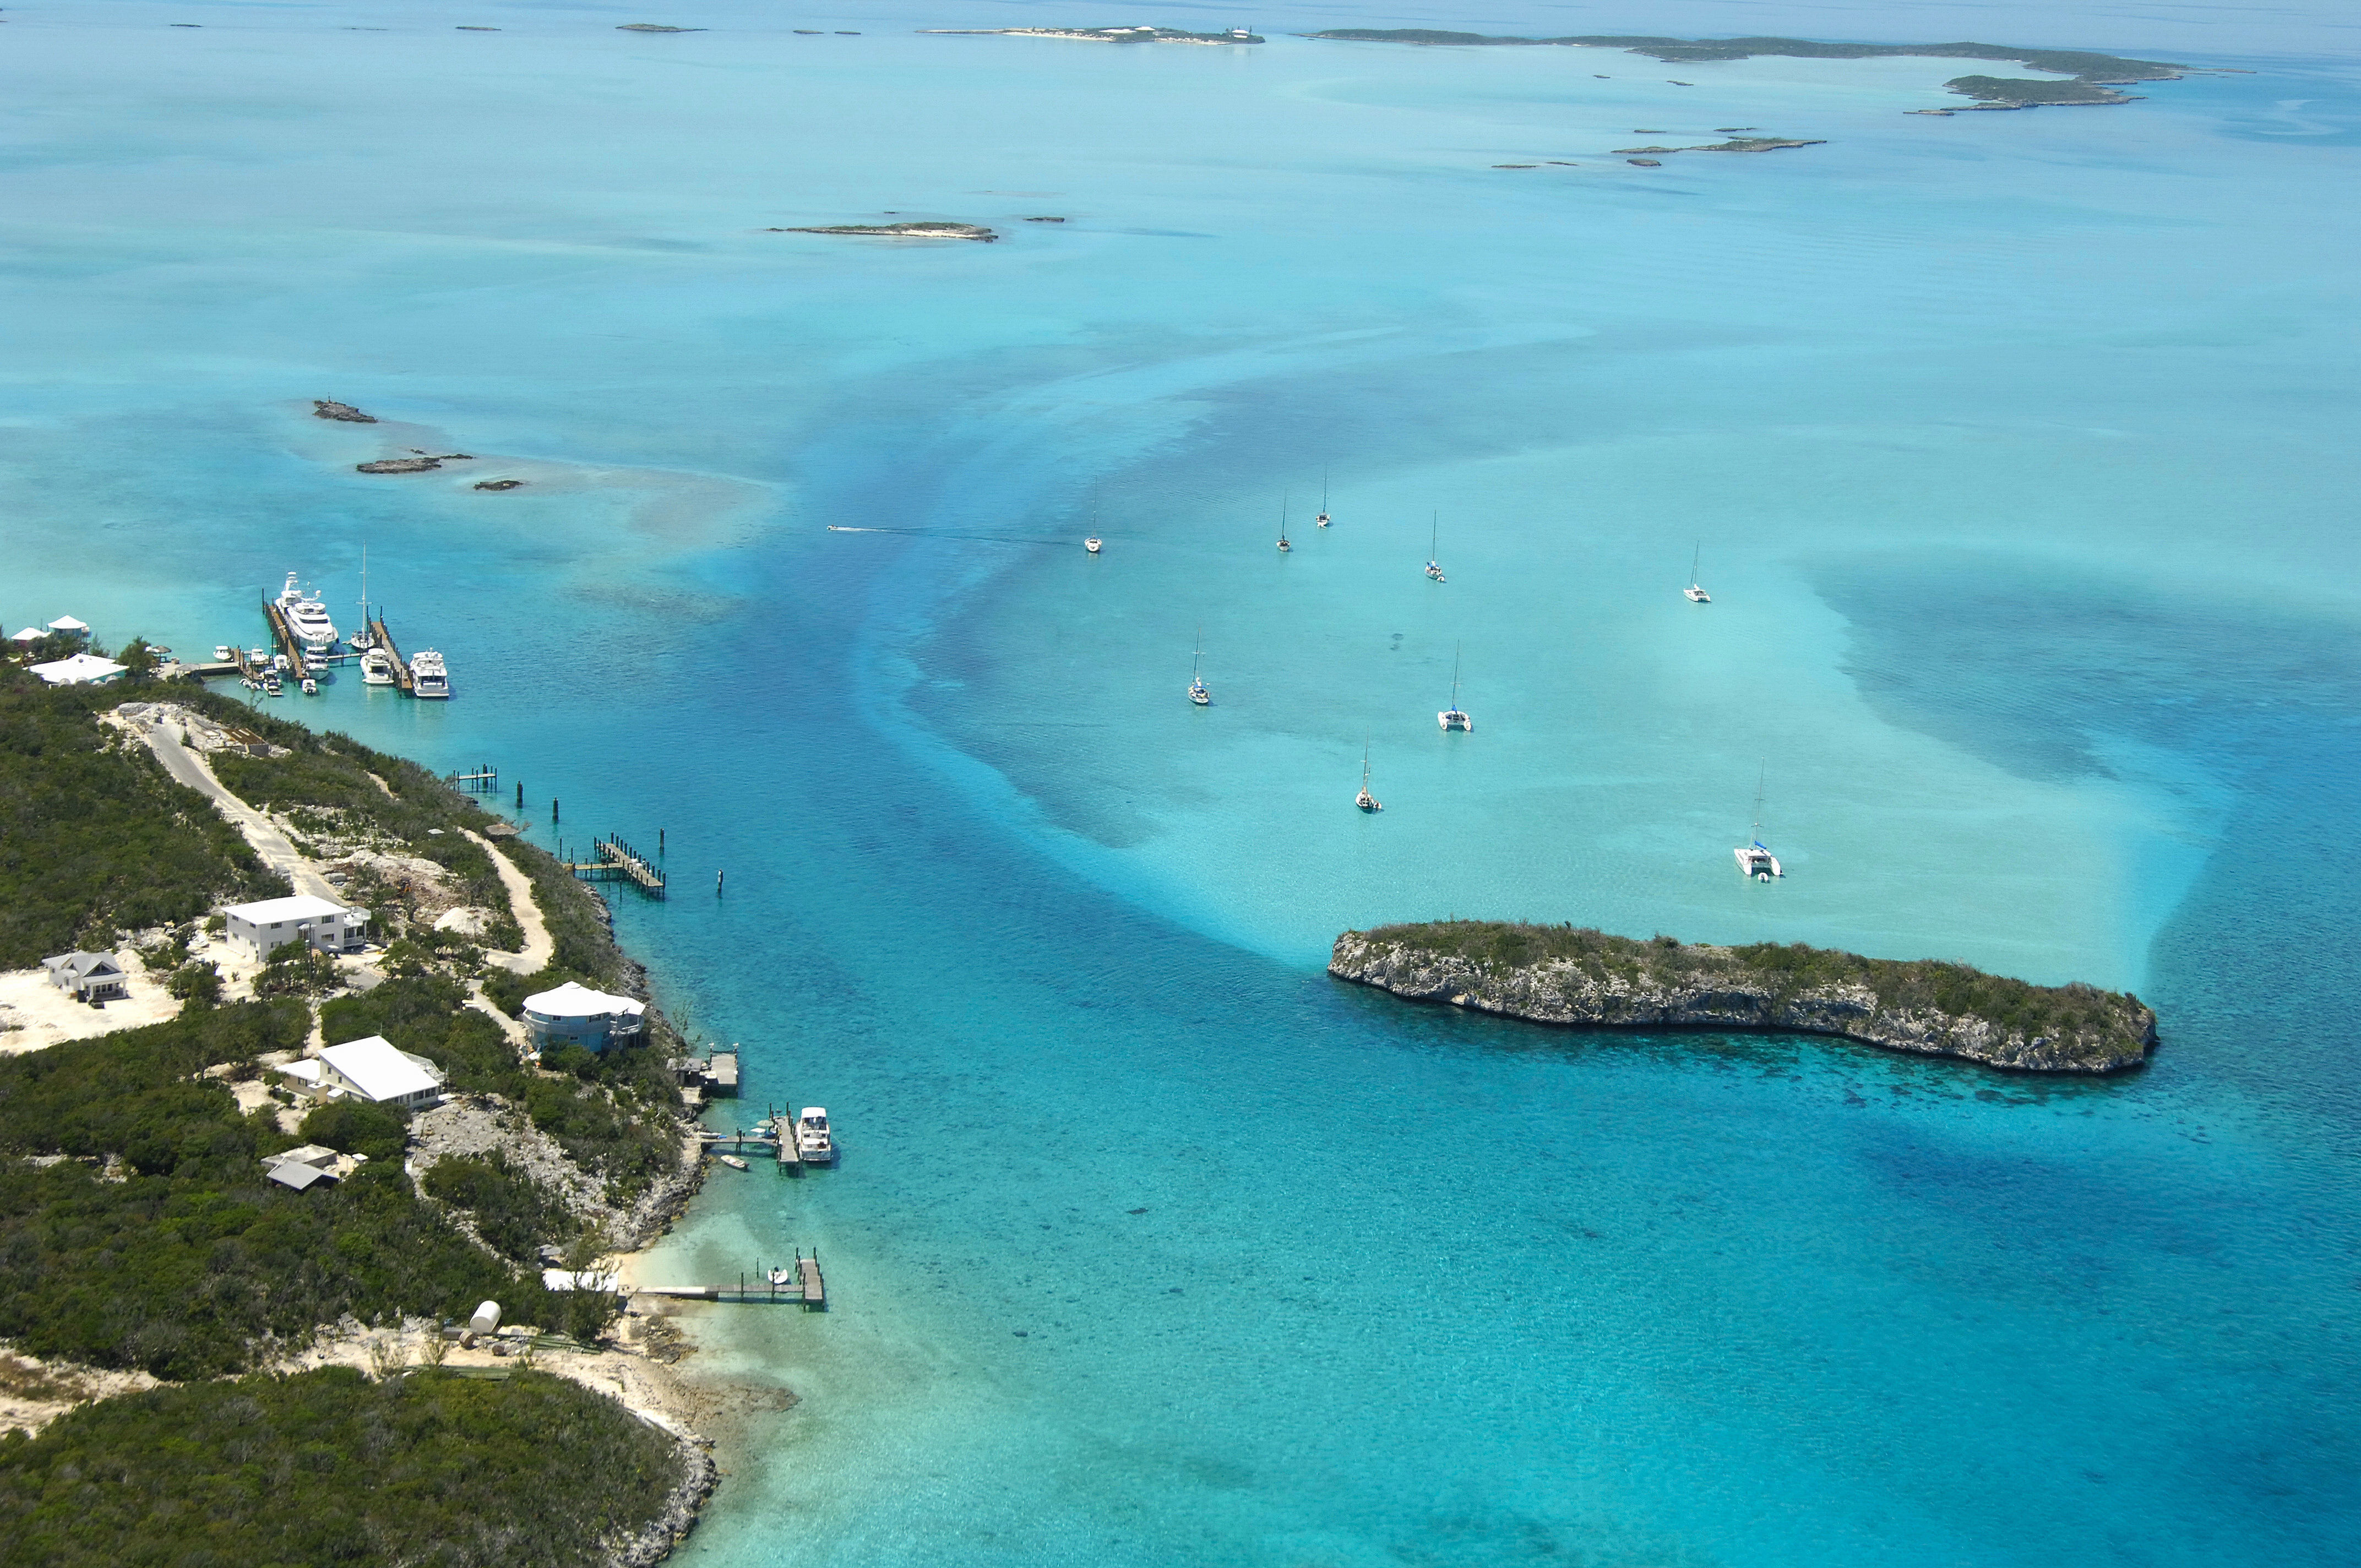 Staniel Cay Anchorage in EX, Bahamas - anchorage Reviews